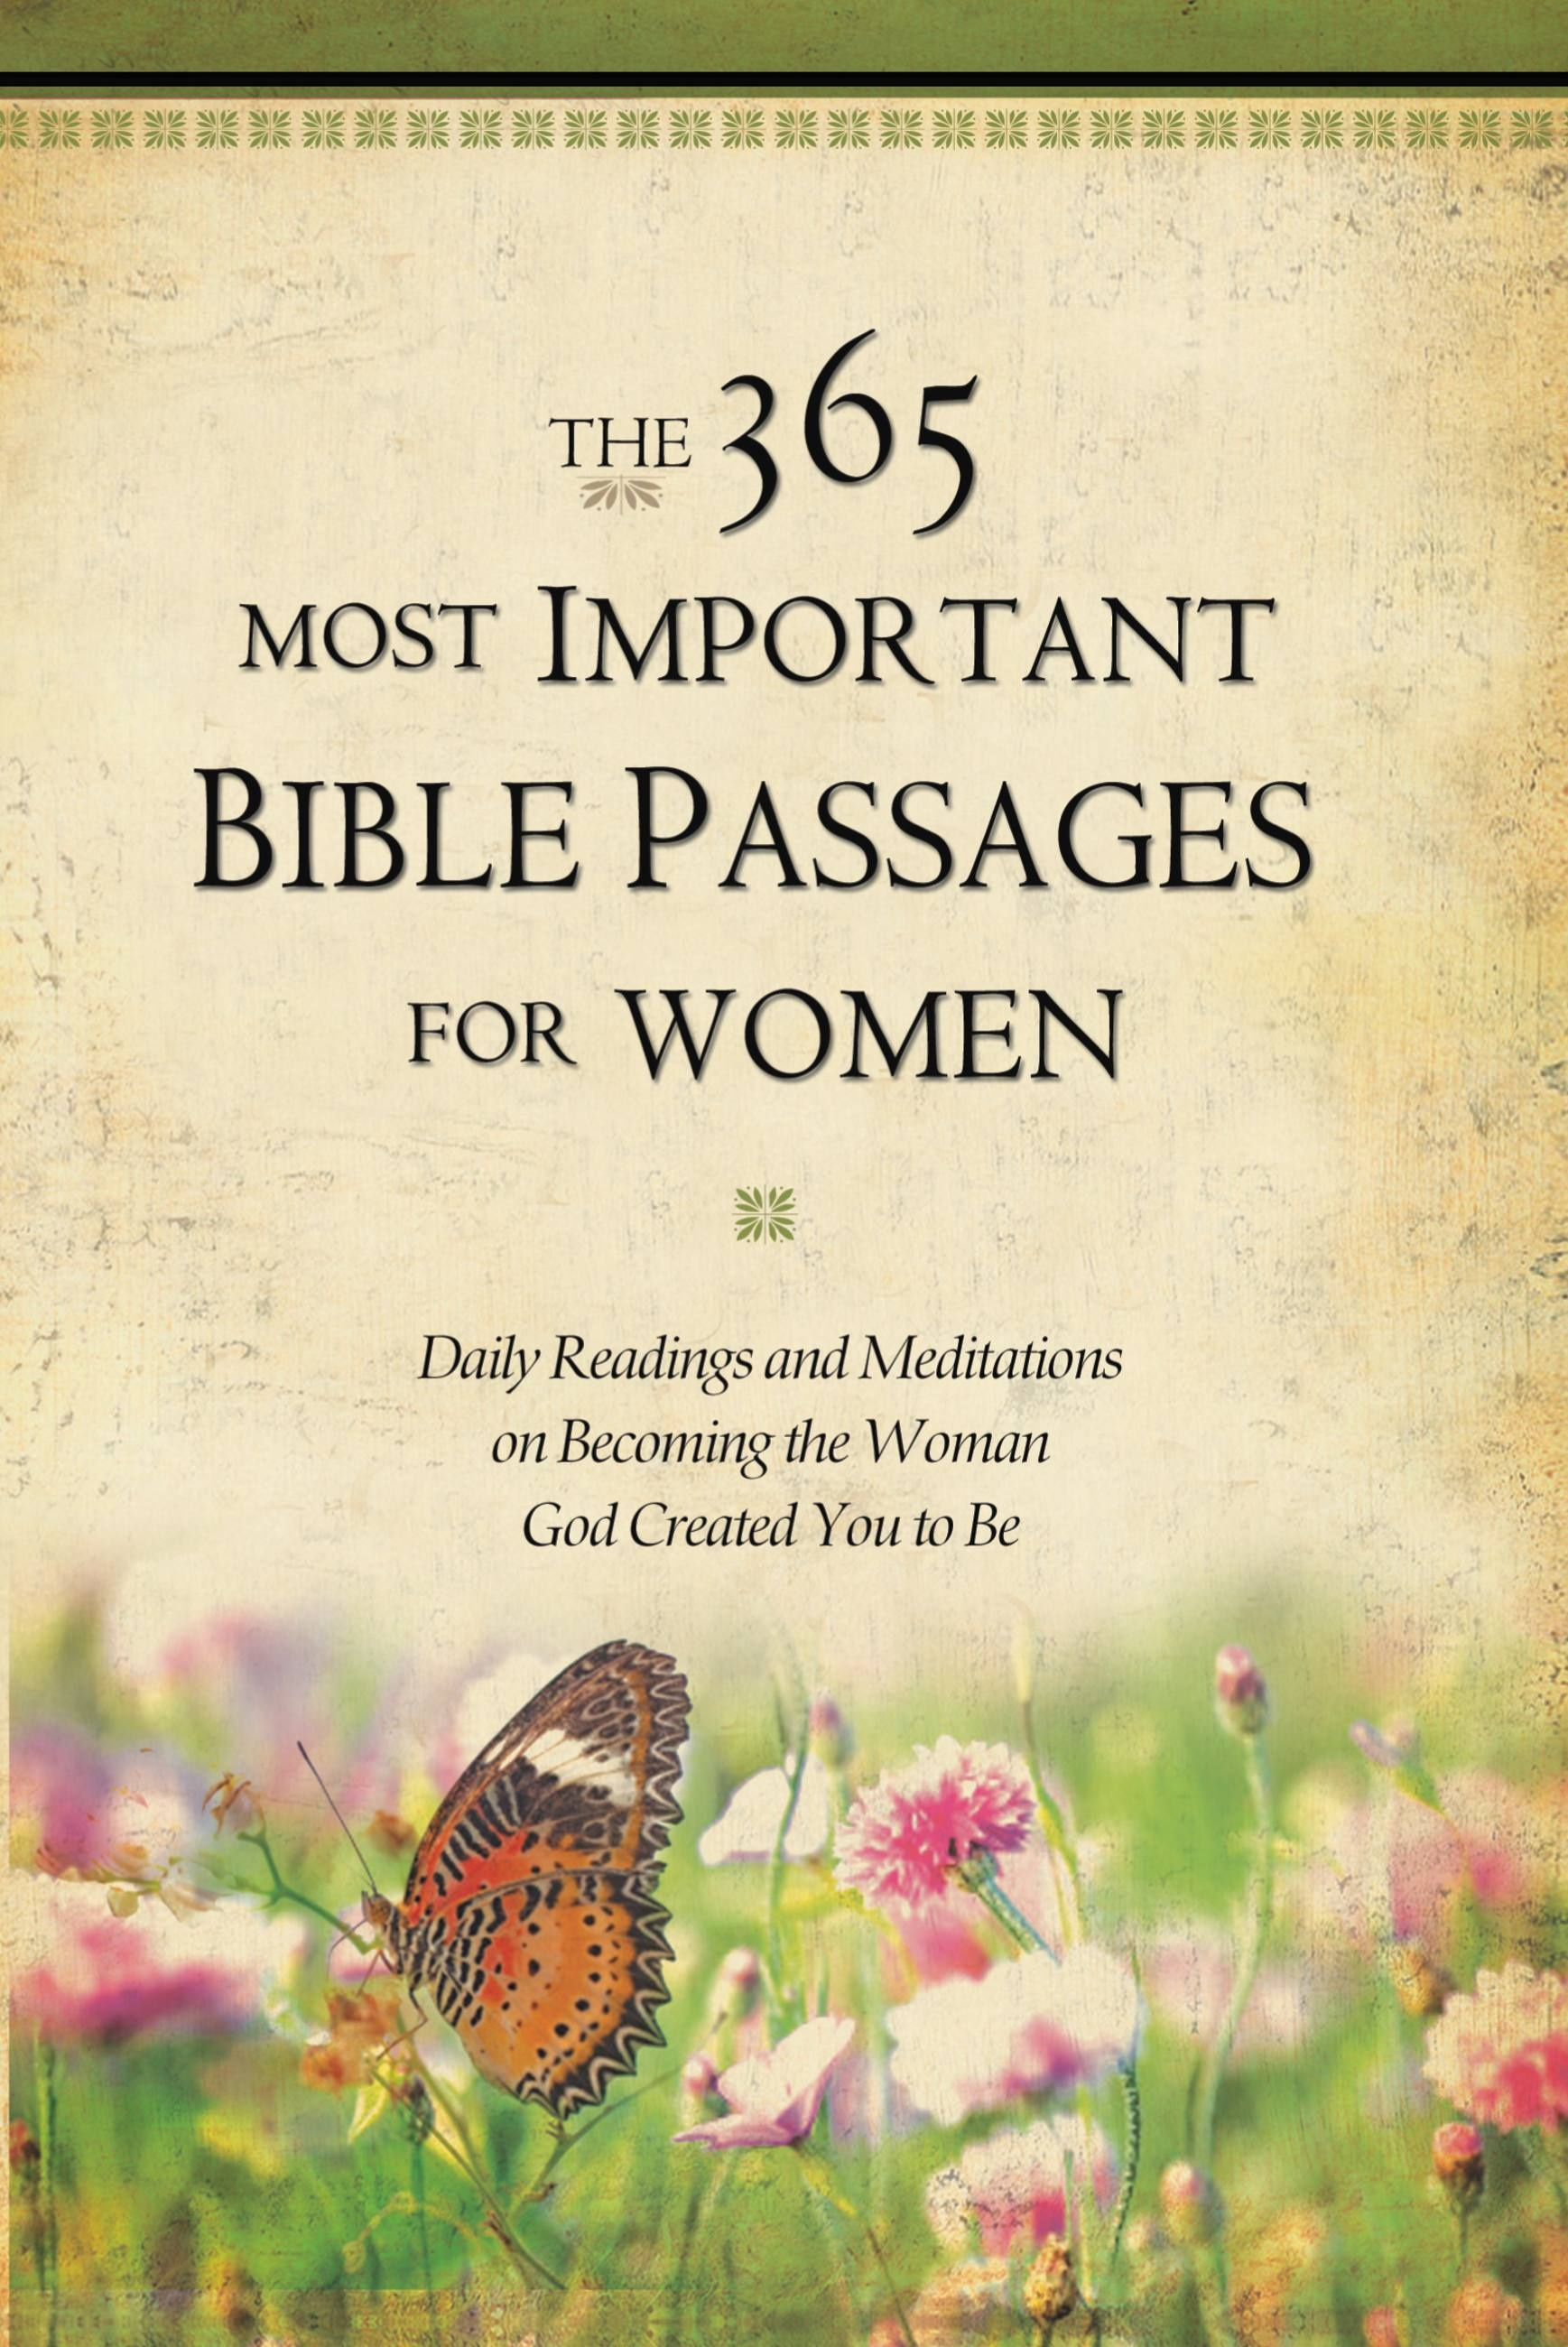 The 365 Most Important Bible Passages for Women